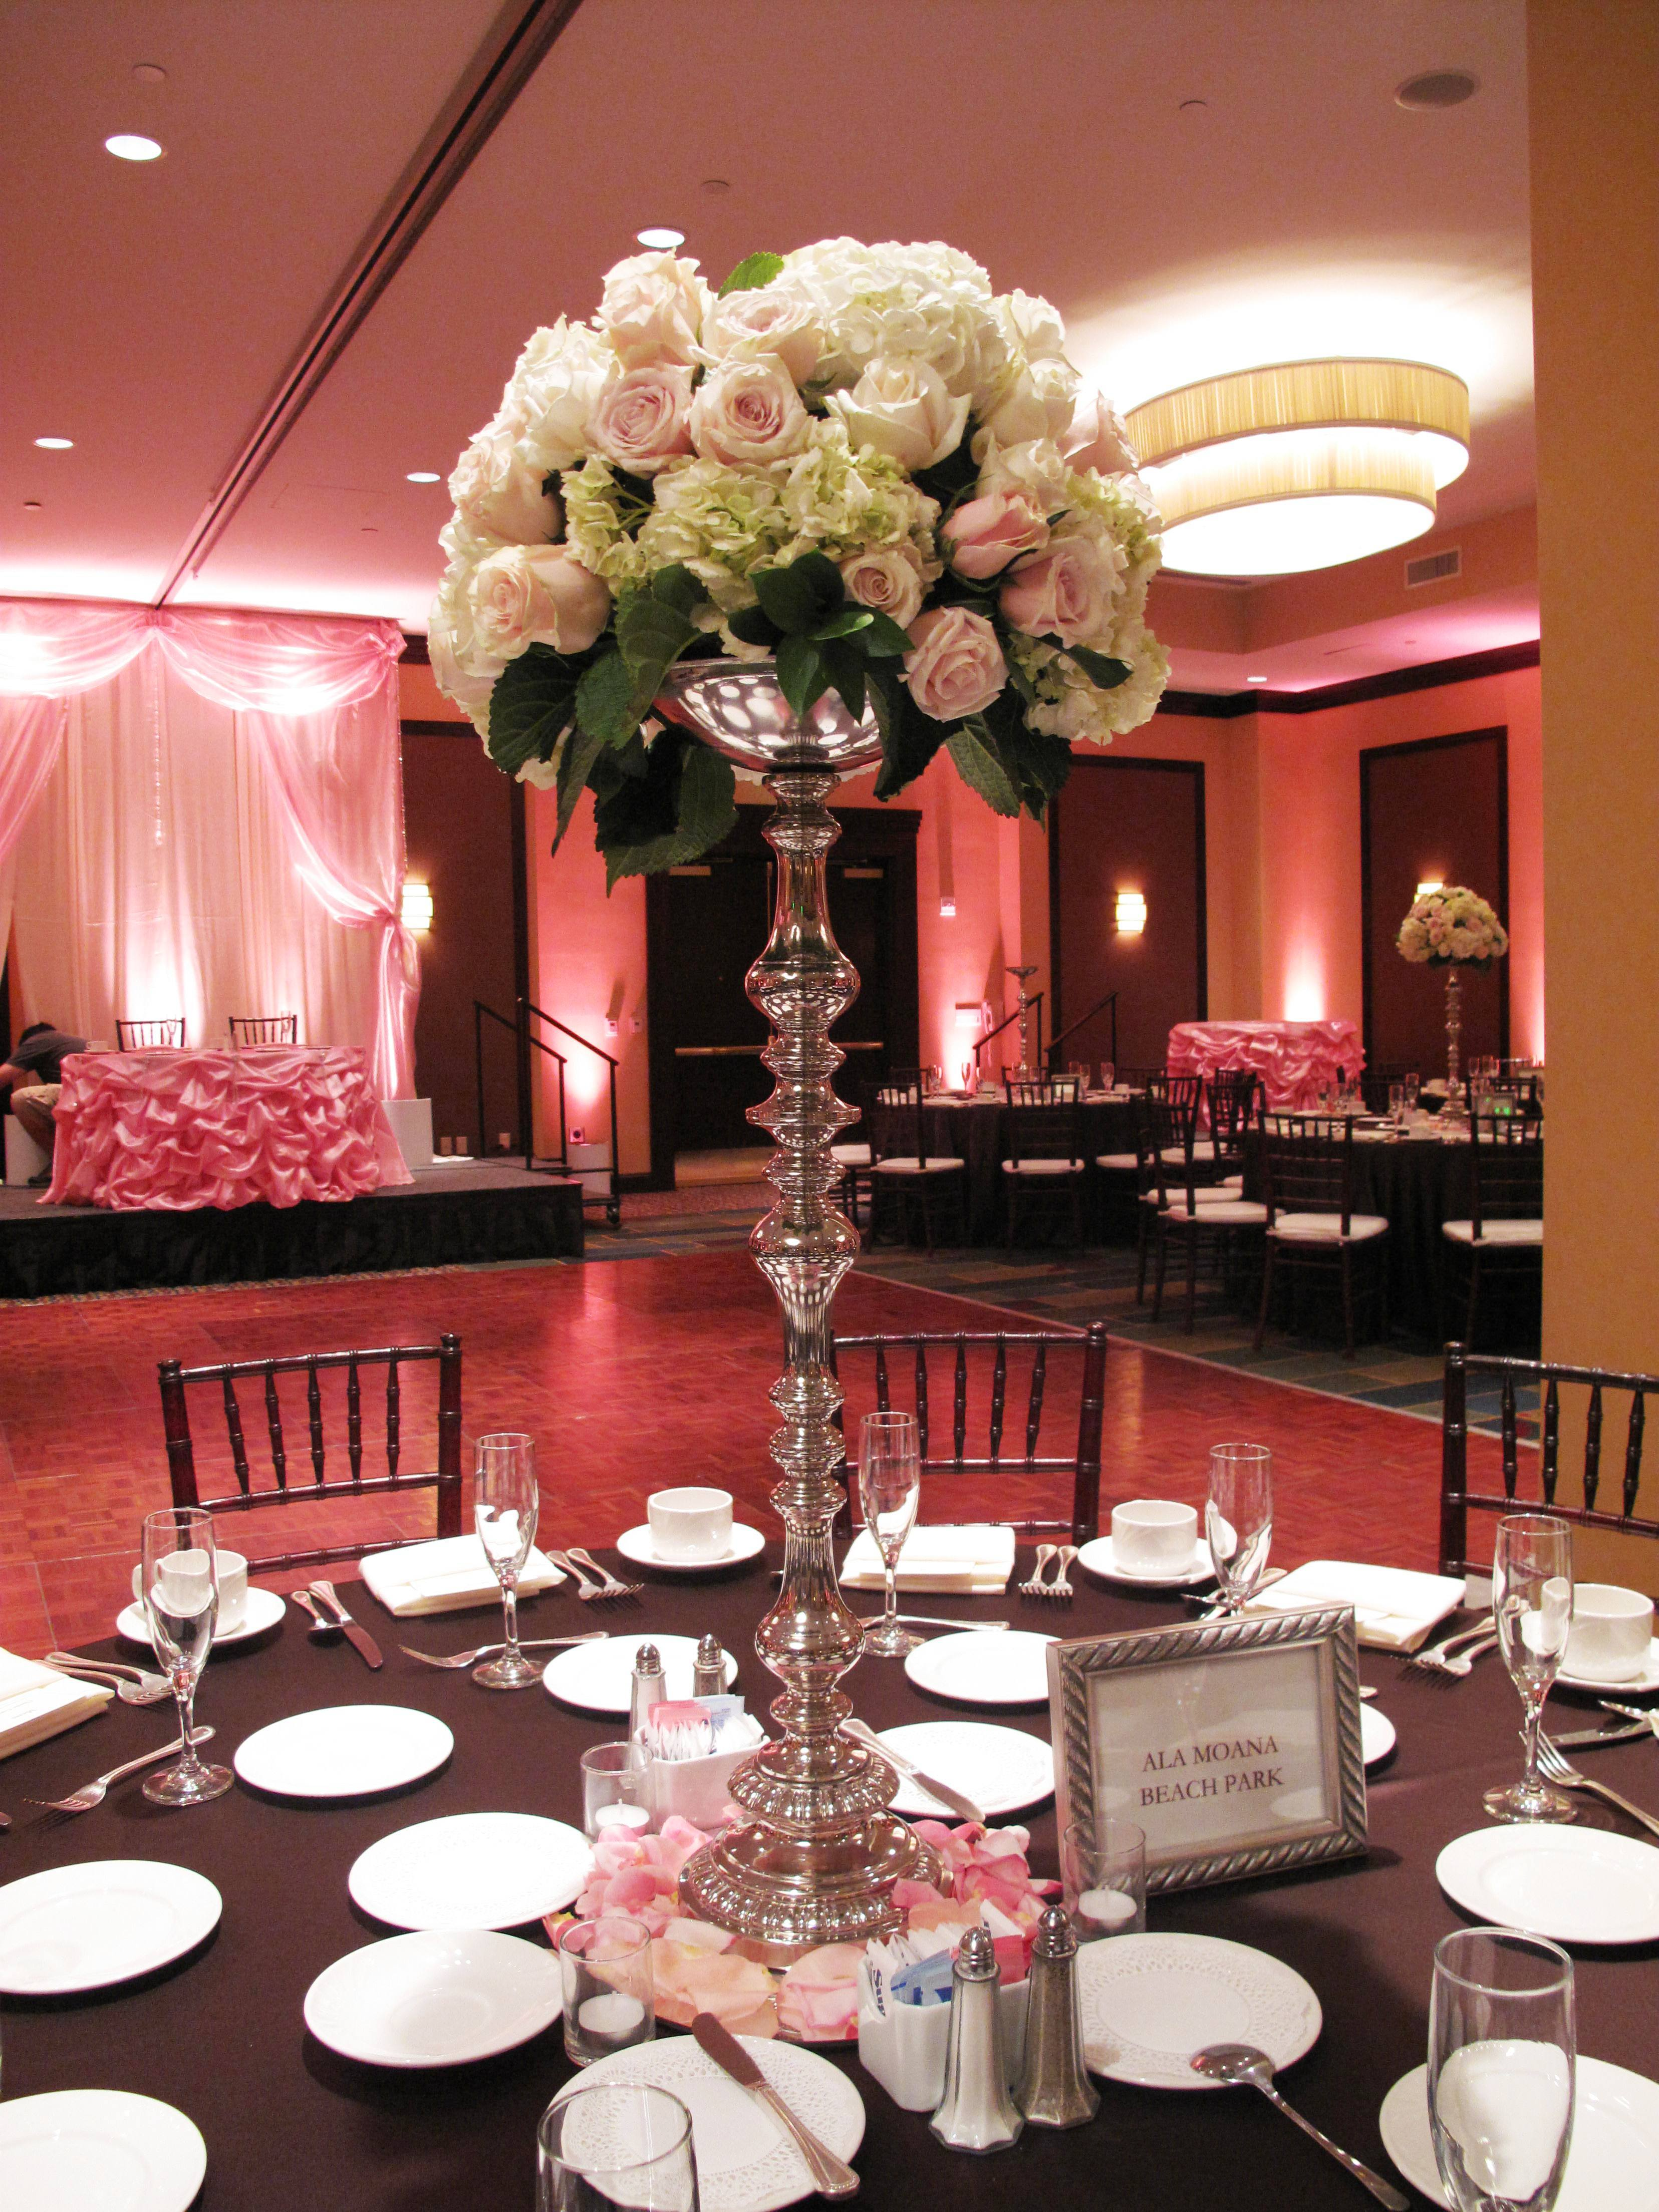 white, ivory, pink, brown, silver, Centerpiece, Sweetheart table, Backdrop